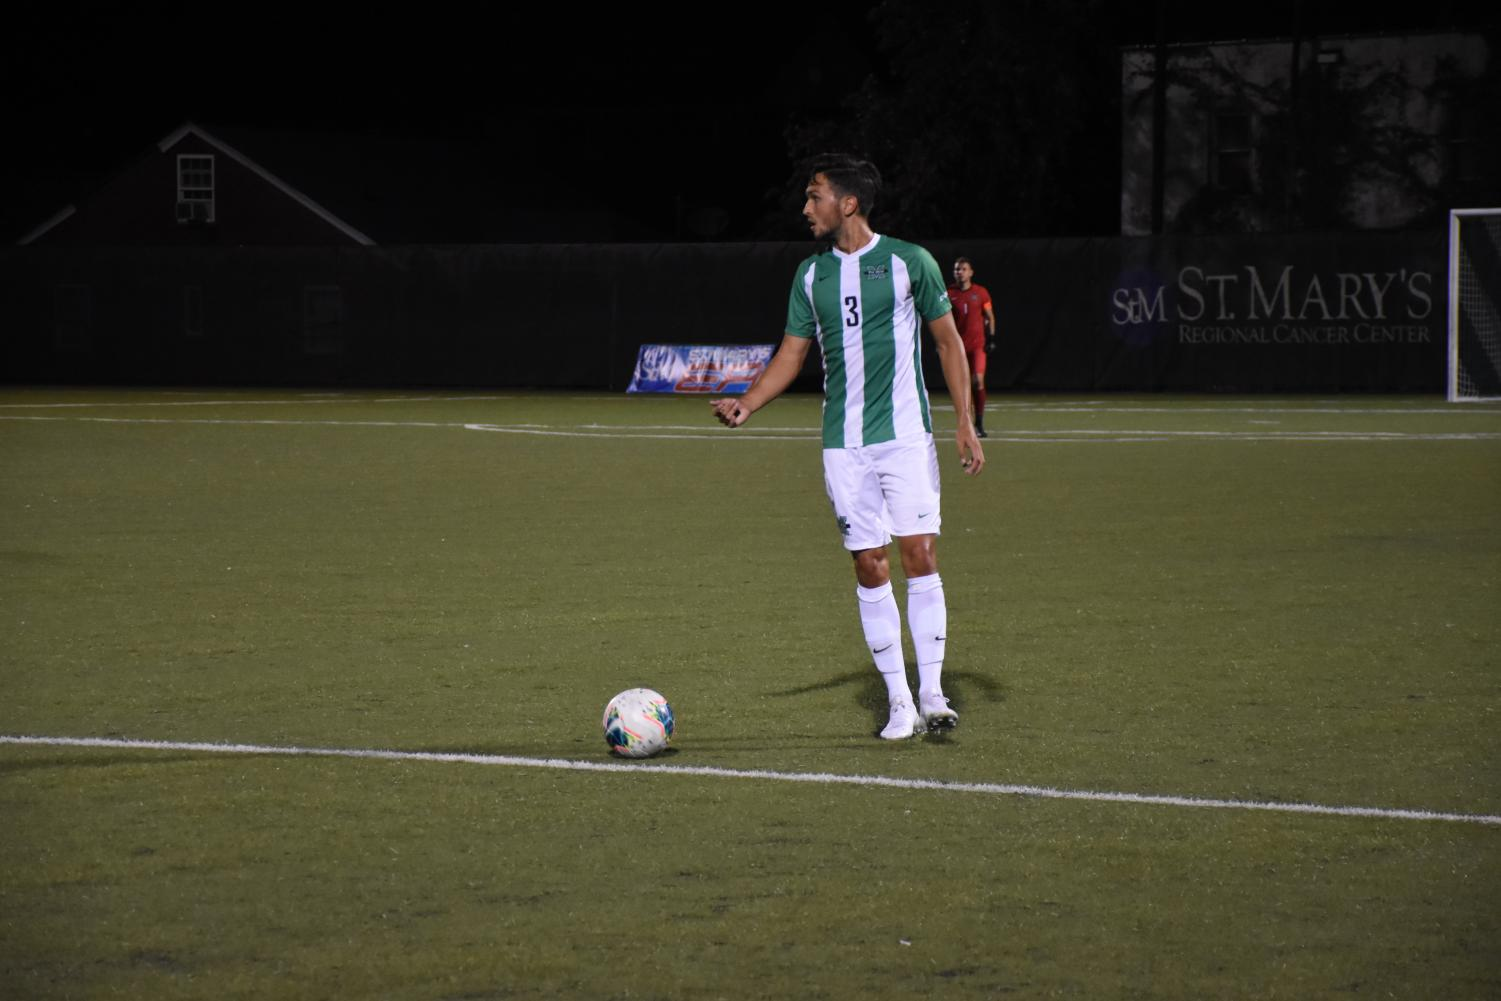 Carlos Diaz- Salcedo surveying the field before passing the ball.